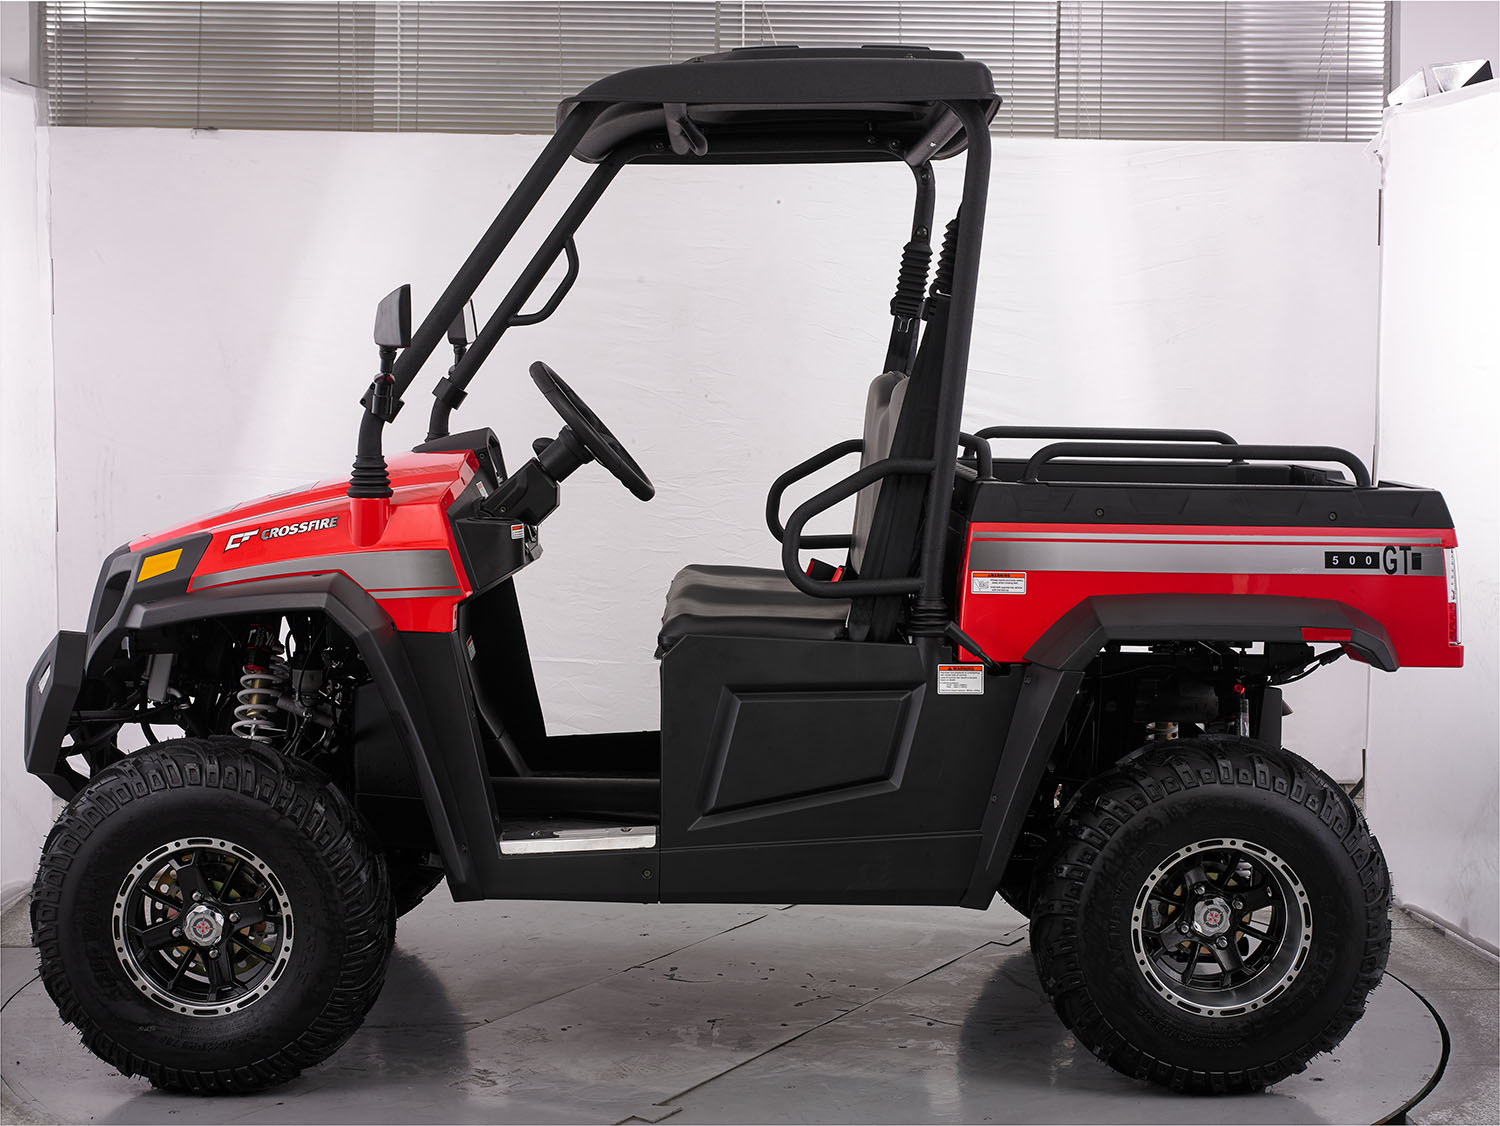 crossfire-500gt-atv-red-side-profile-tray-2